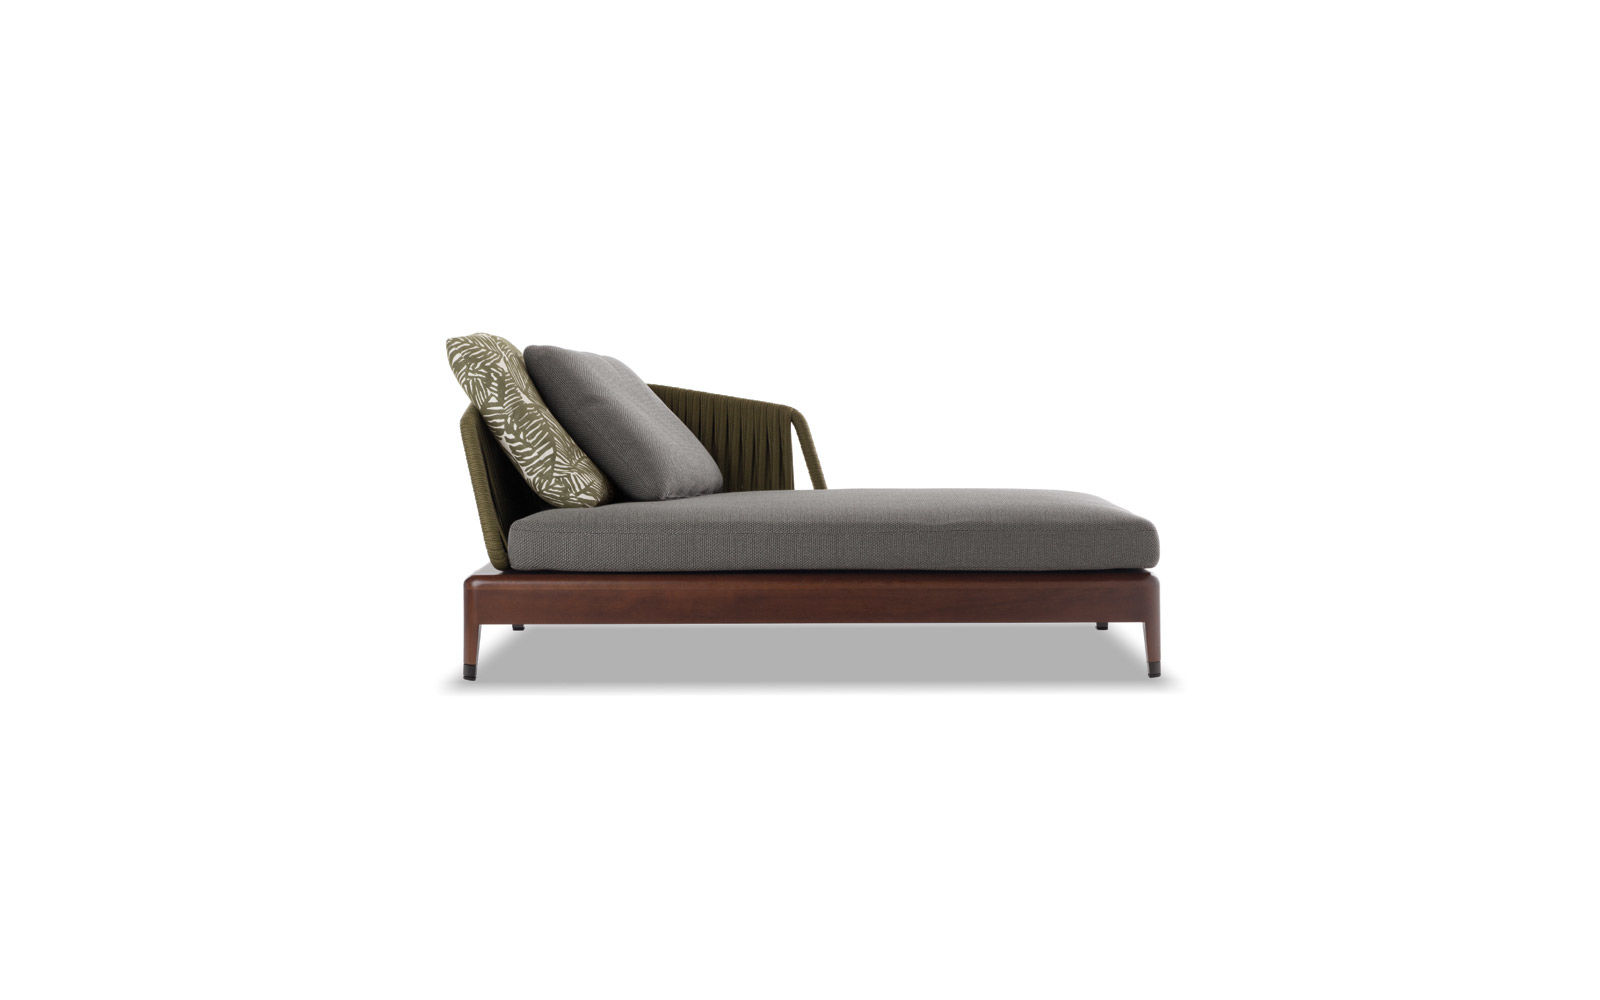 lowell pdx darby reviews home cheap co chaise furniture lounge wayfair